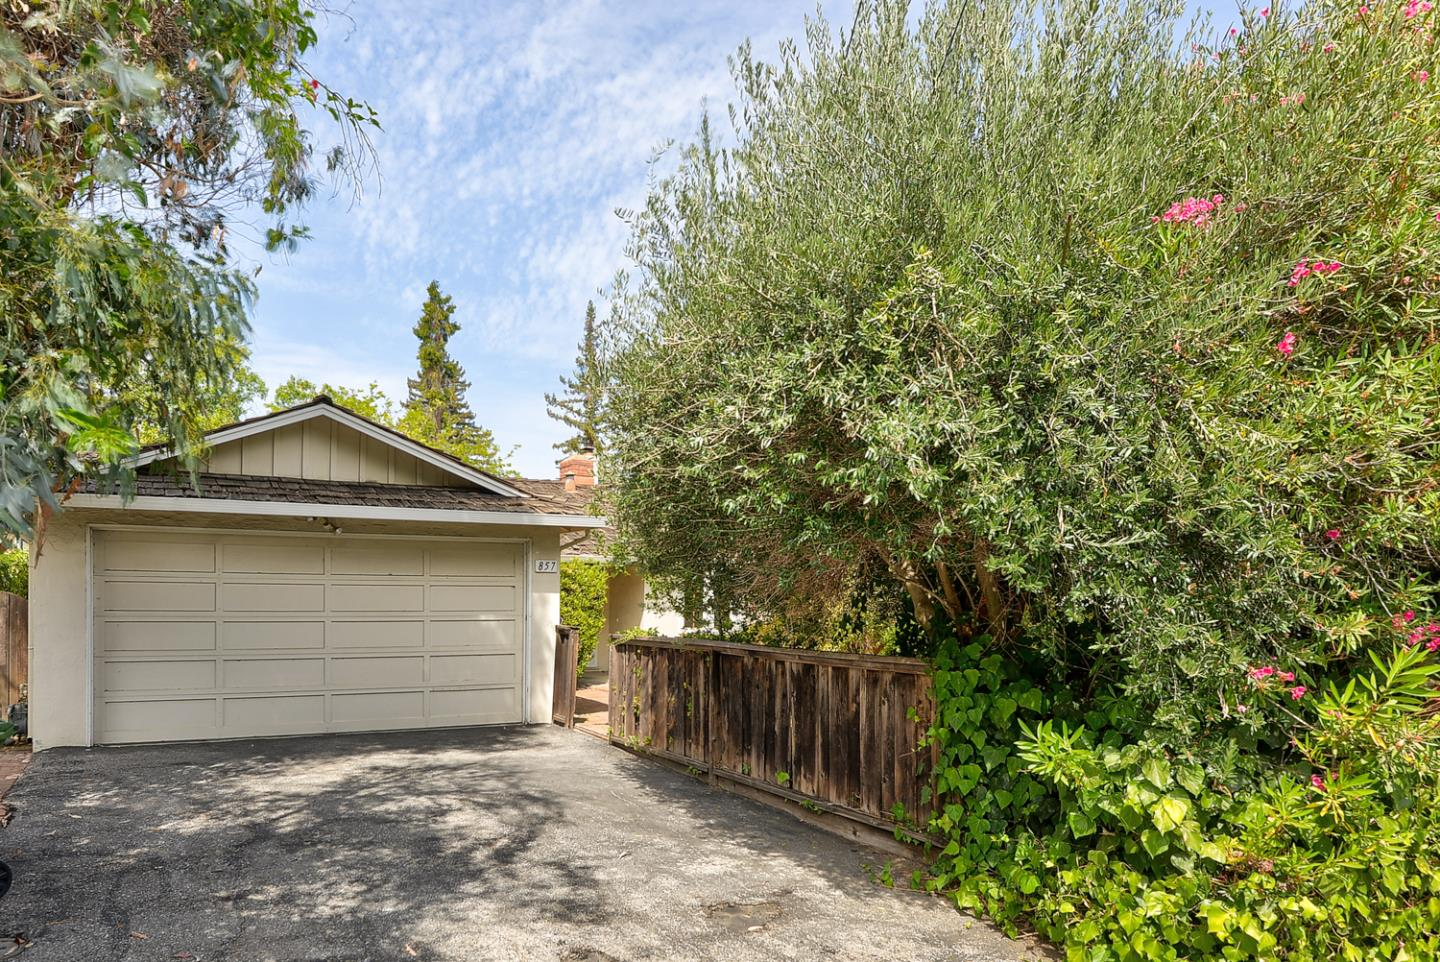 Located on a quiet cul-de-sac in the country club - this property is waiting for someone's vision!  Top rated Los Altos schools!!